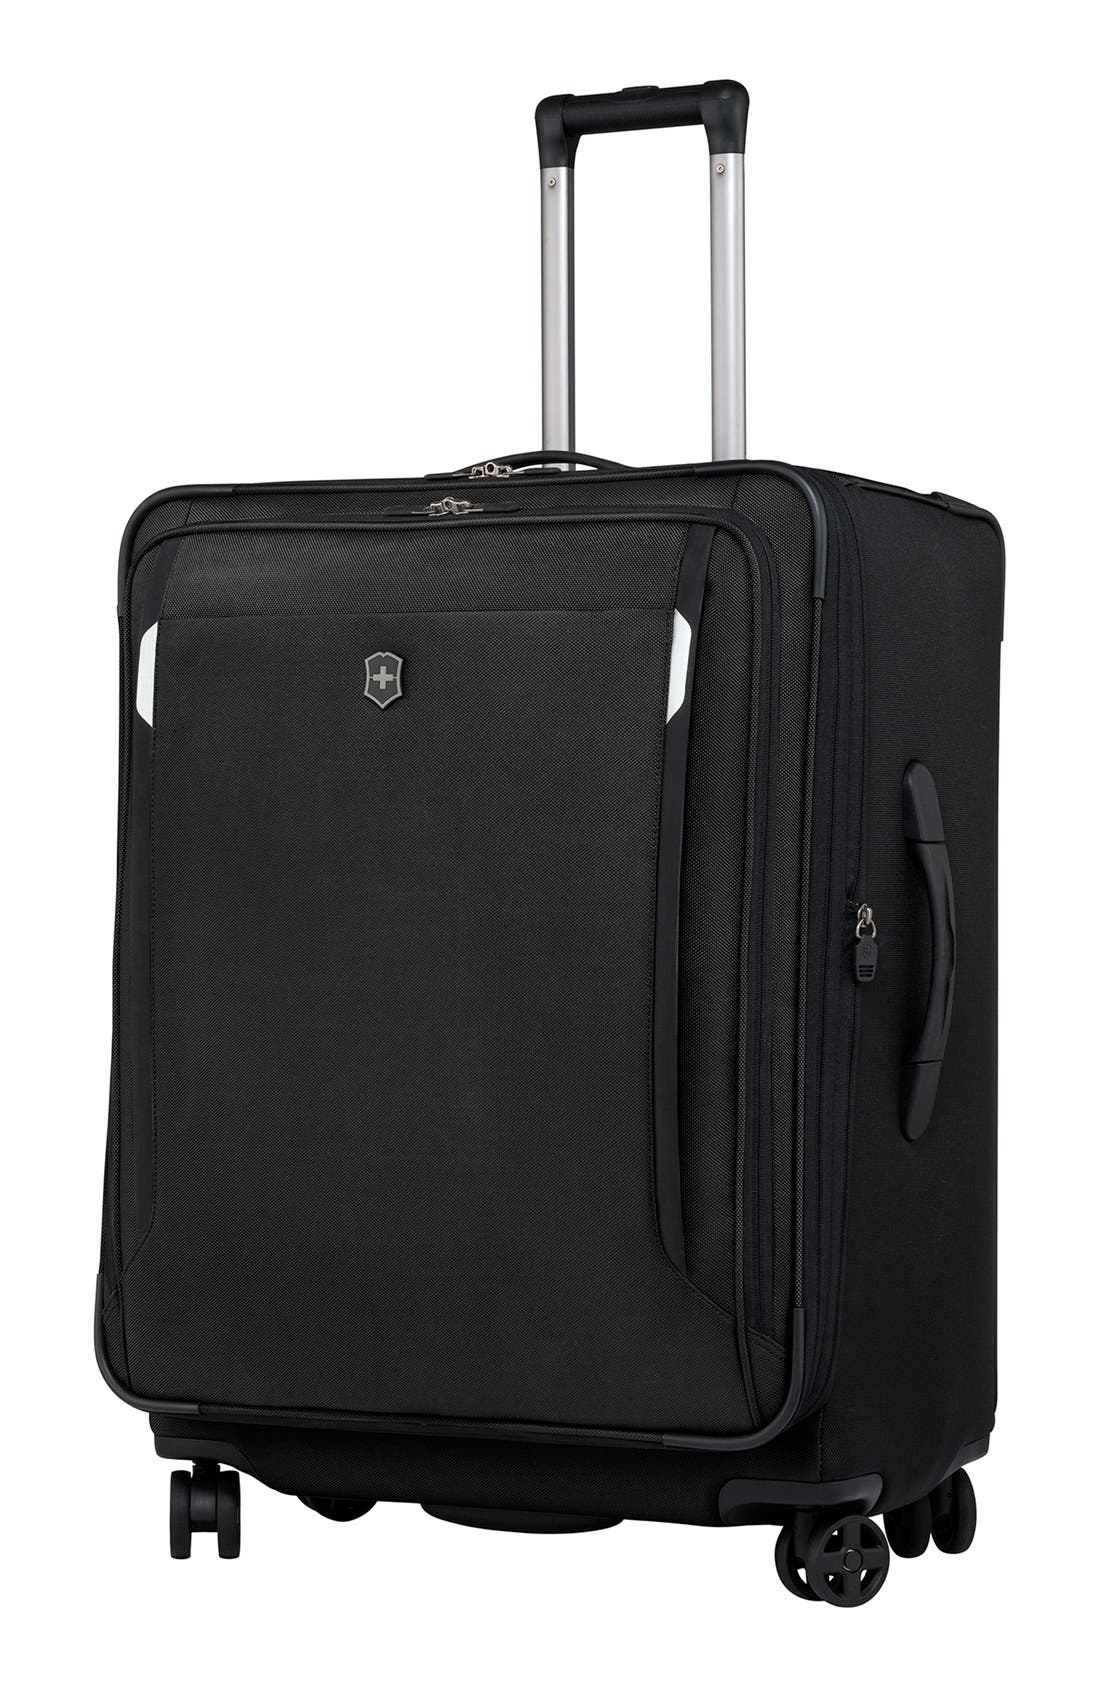 WT 5.0 Dual Caster Wheeled 27-Inch Packing Case,                             Main thumbnail 1, color,                             Black